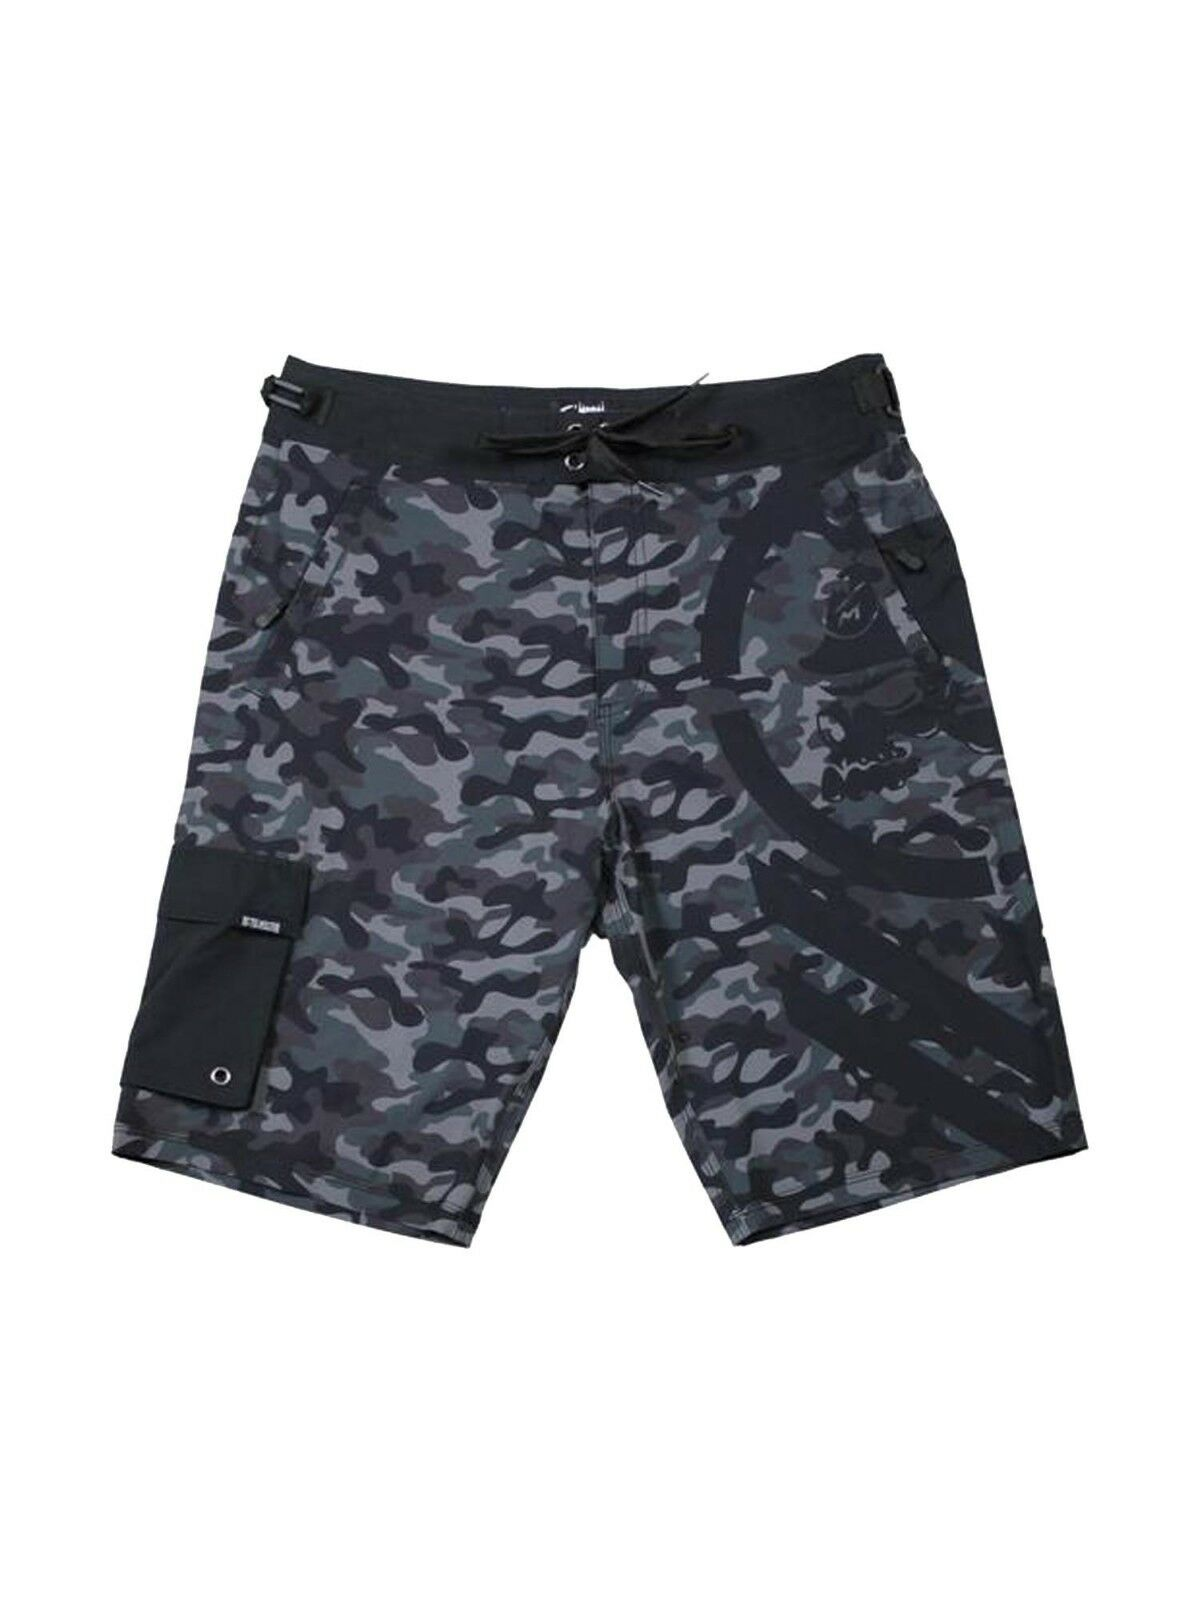 Metal Mulisha Men's Snare Camo Boardshorts Motocross Designed Skull Logo Trunks